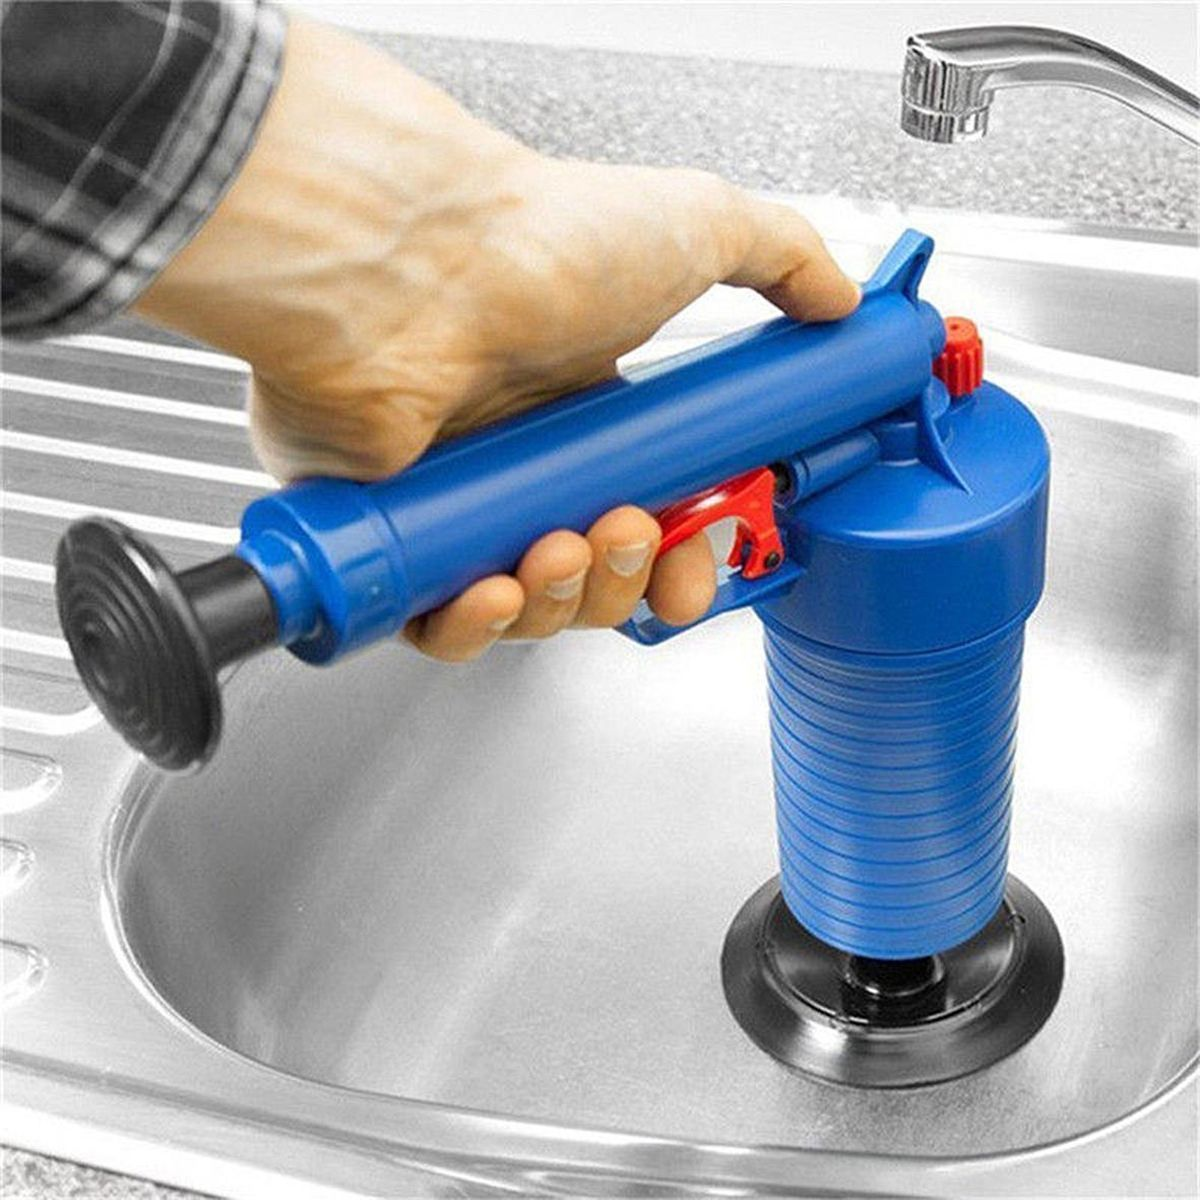 Air Pressure Drain Cleaner Sewer Cleaning Brush Kitchen Bathroom Toilet Dredge Plunger Basin <font><b>Pipeline</b></font> Clogged Remover Tool Set